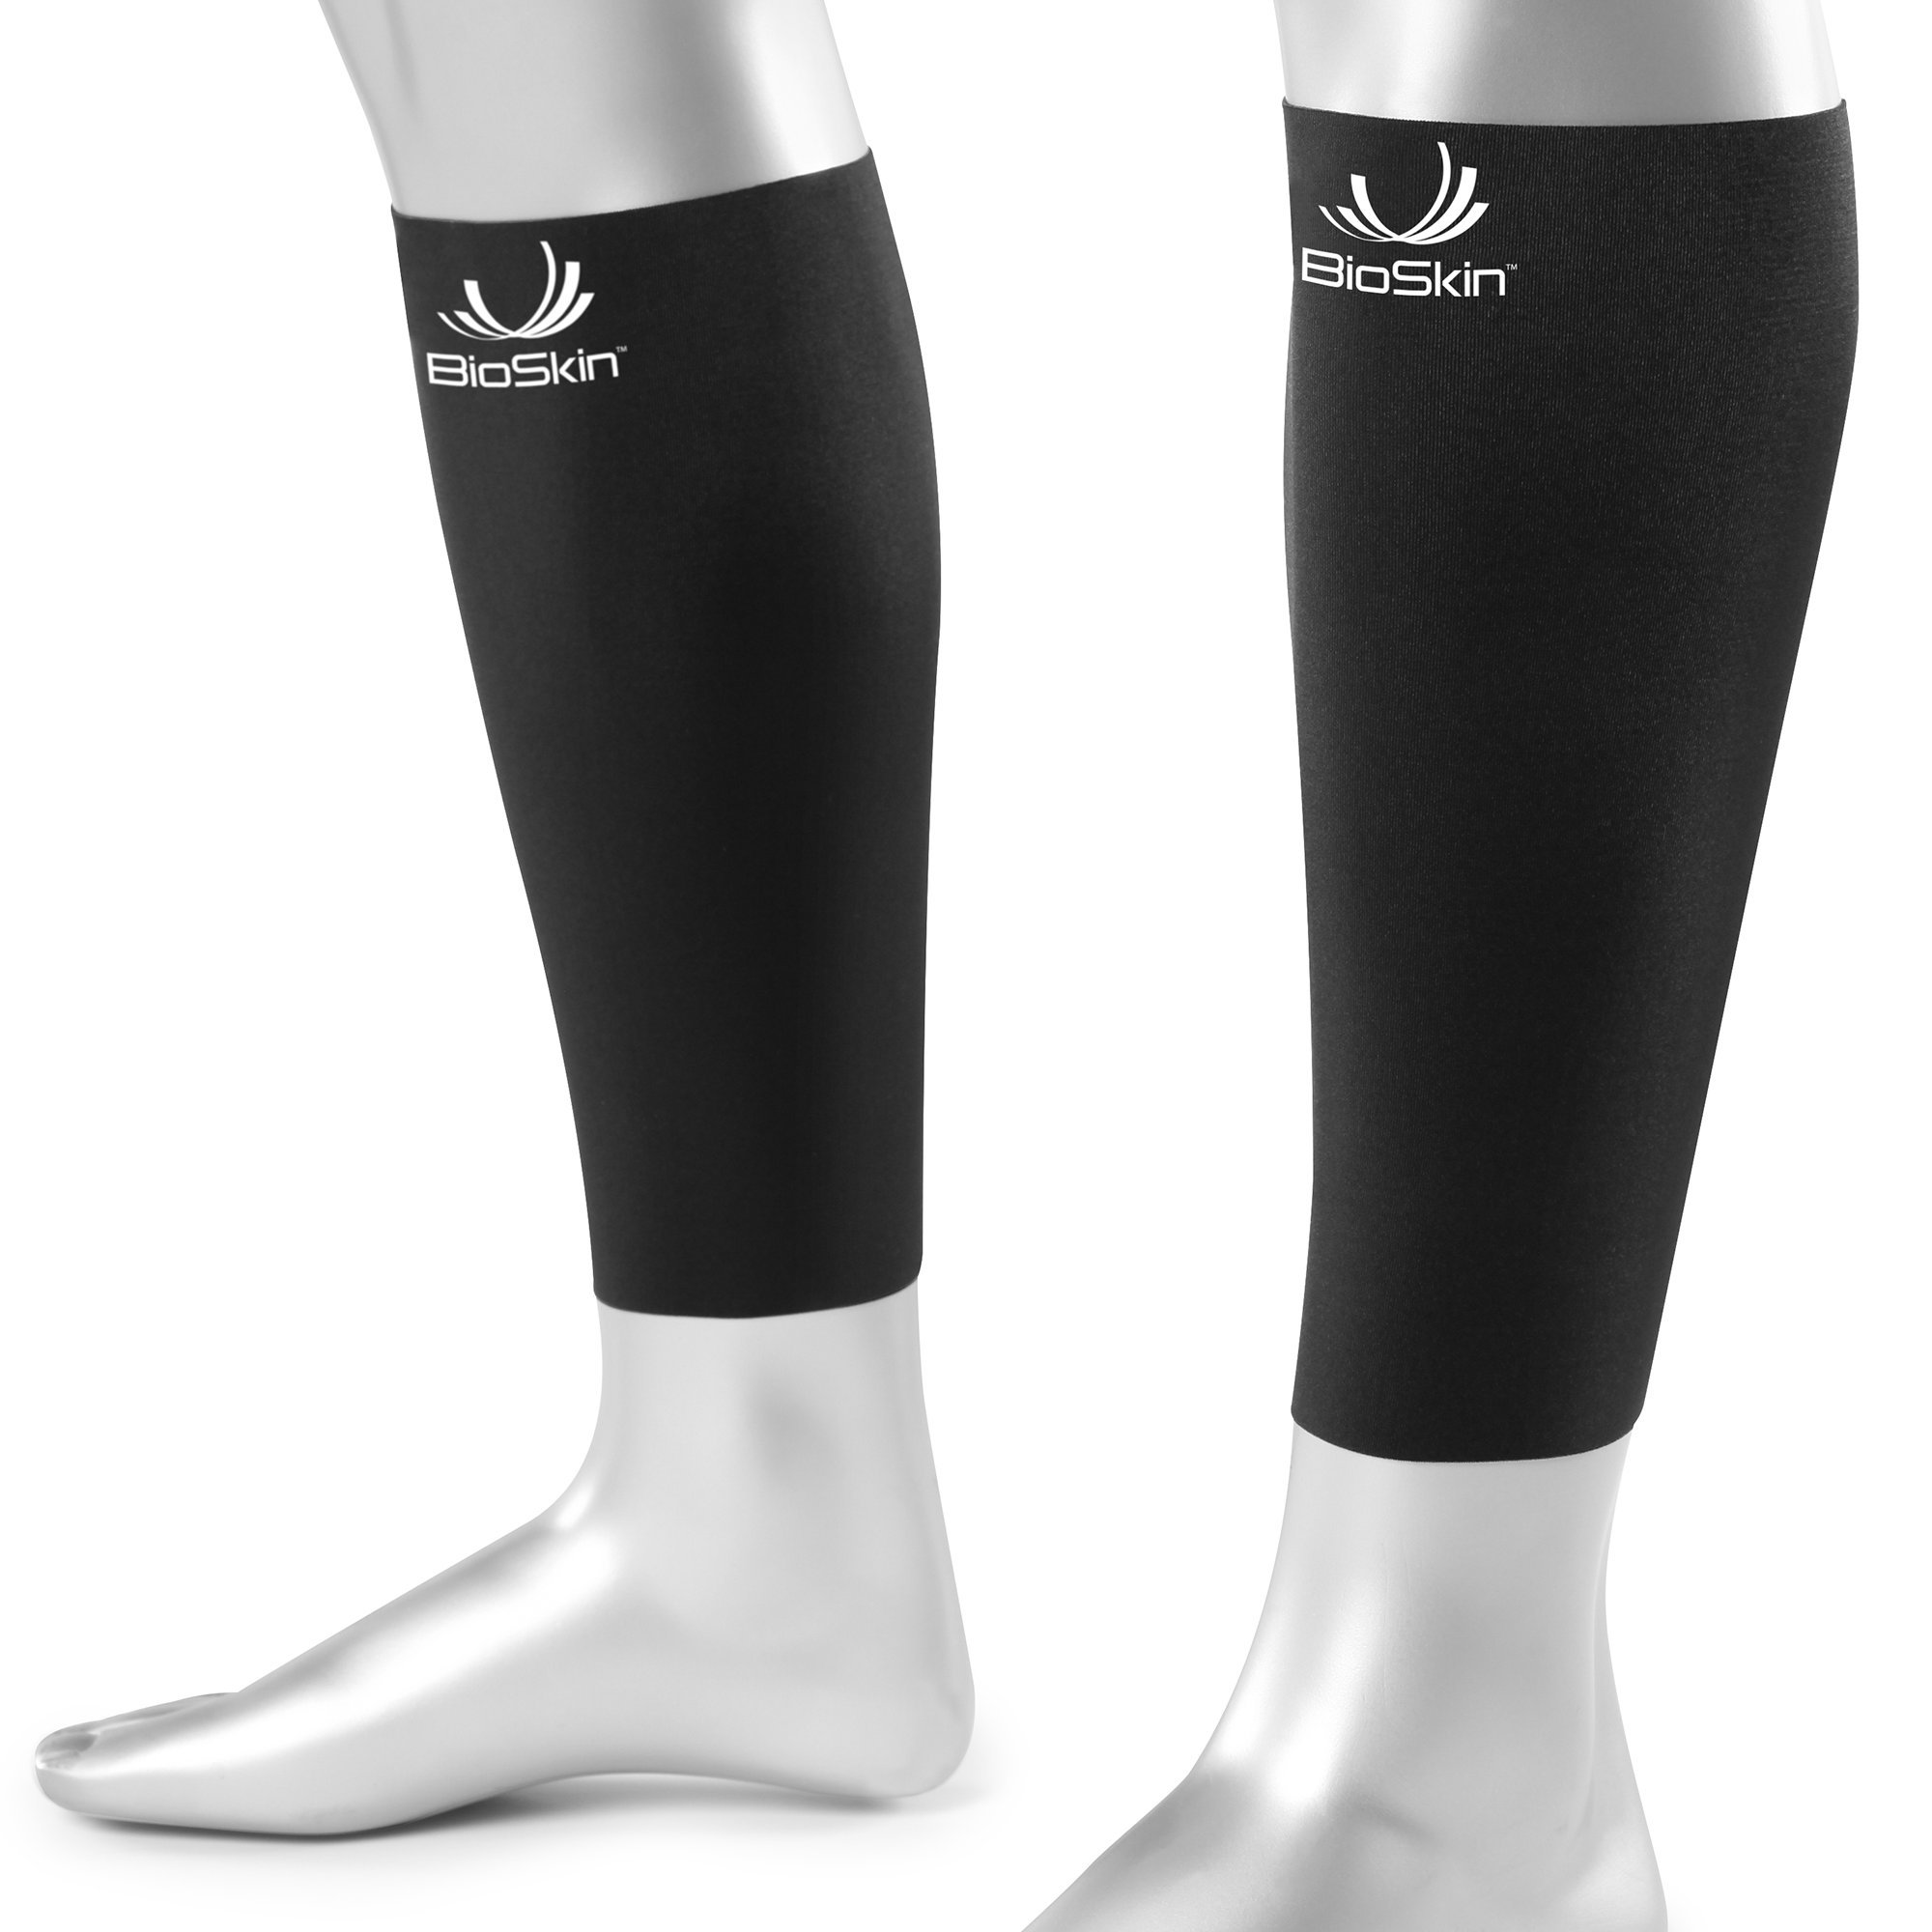 BioSkin Calf Sleeve - Compression Calf Sleeves - Medical Grade Compression - Hypoalergenic - Breathable - Large (Pair) by BIOSKIN